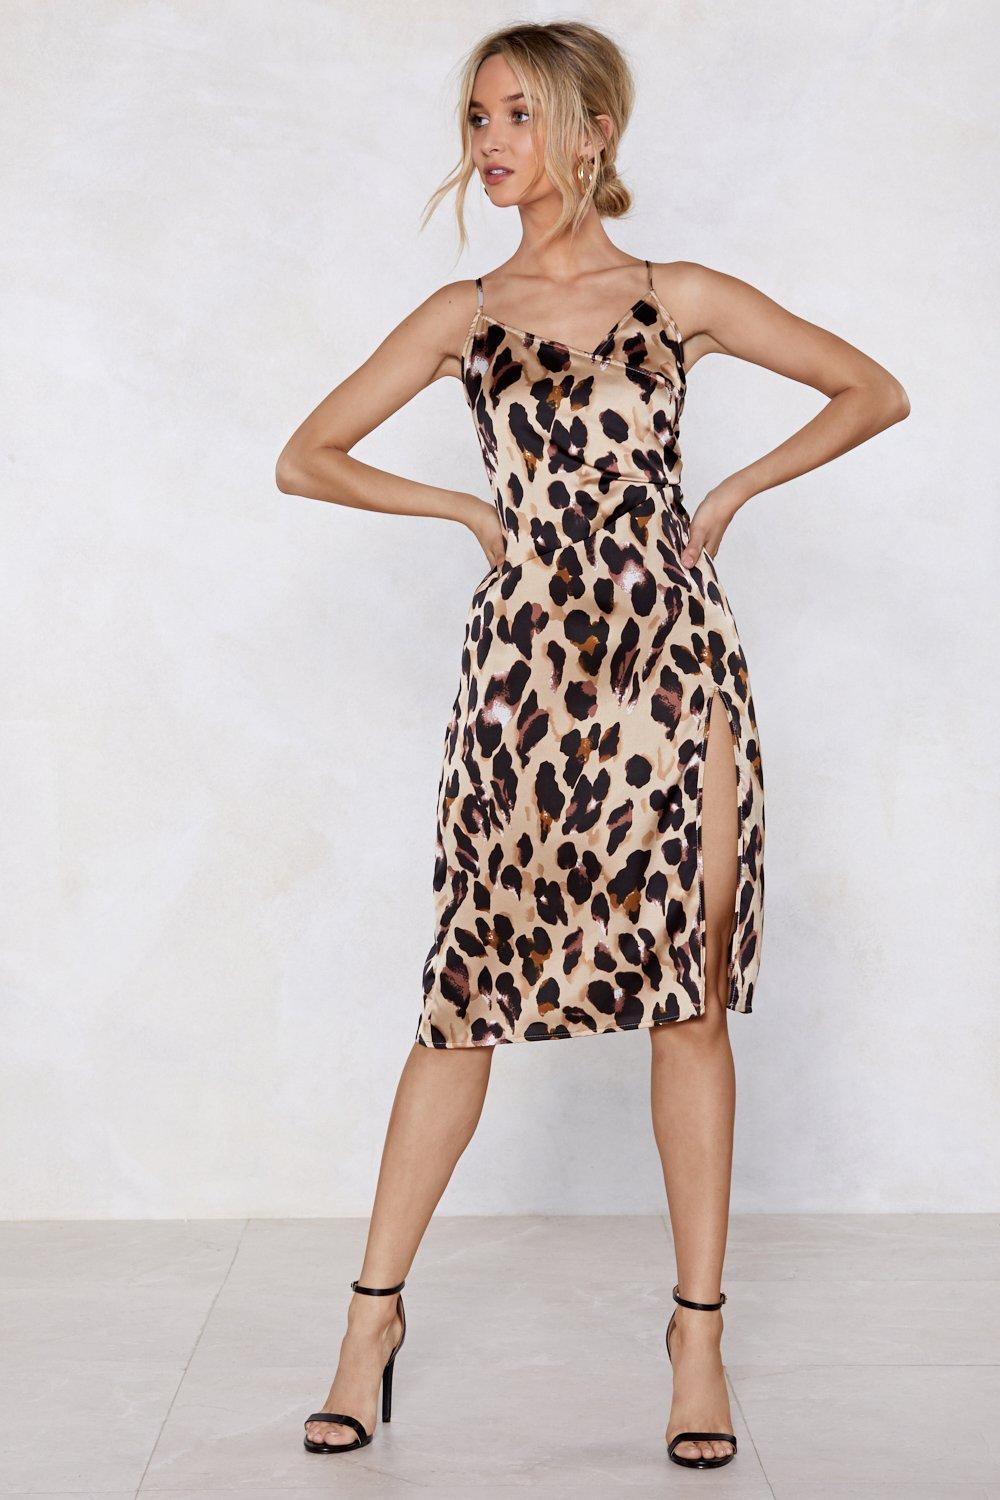 So Fierce Leopard Dress  e7e9d915b